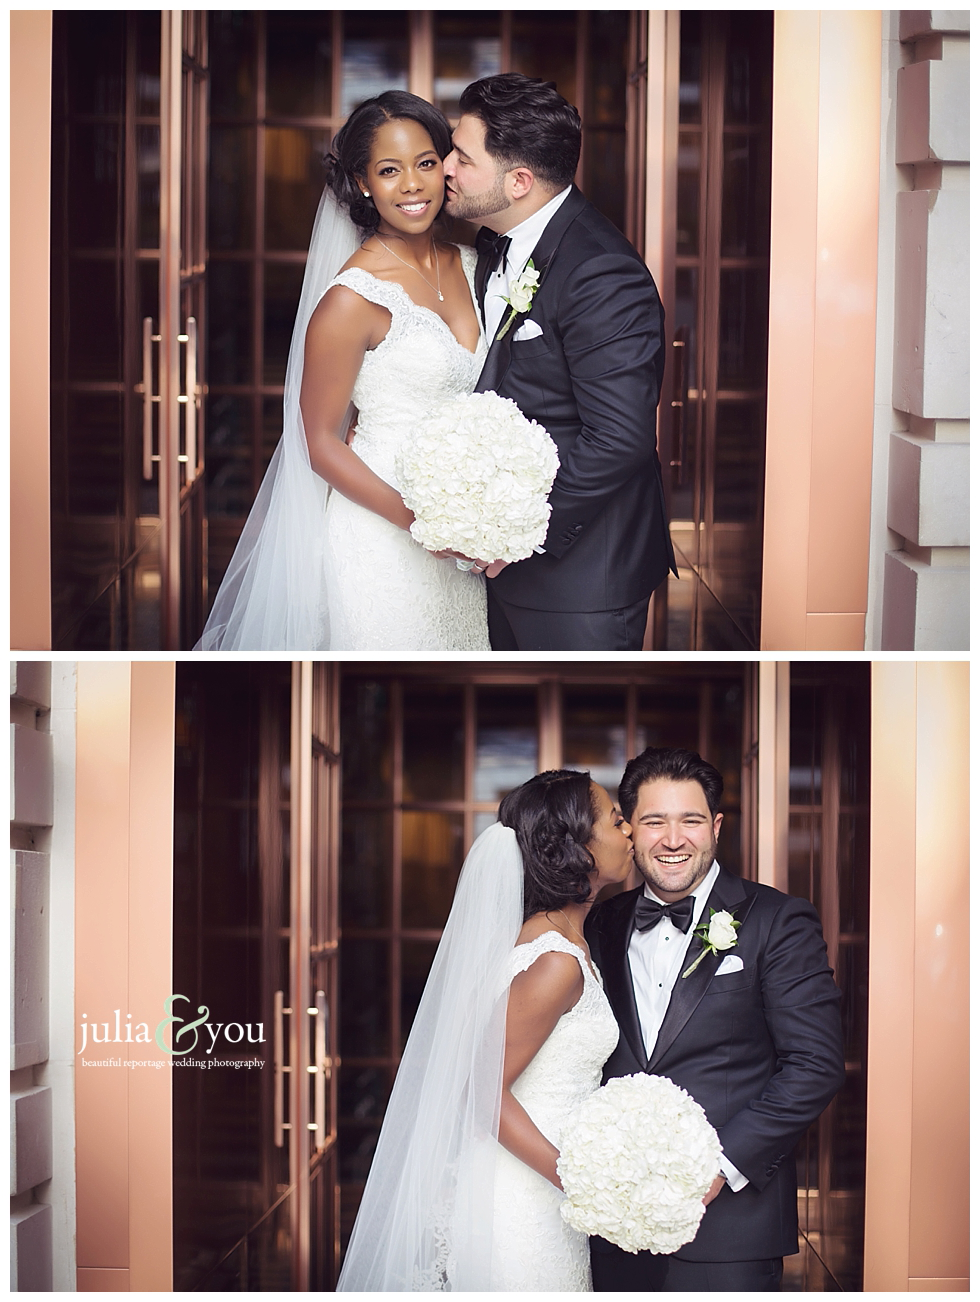 Whitney and Stamatis' London wedding at The Rosewood Hotel